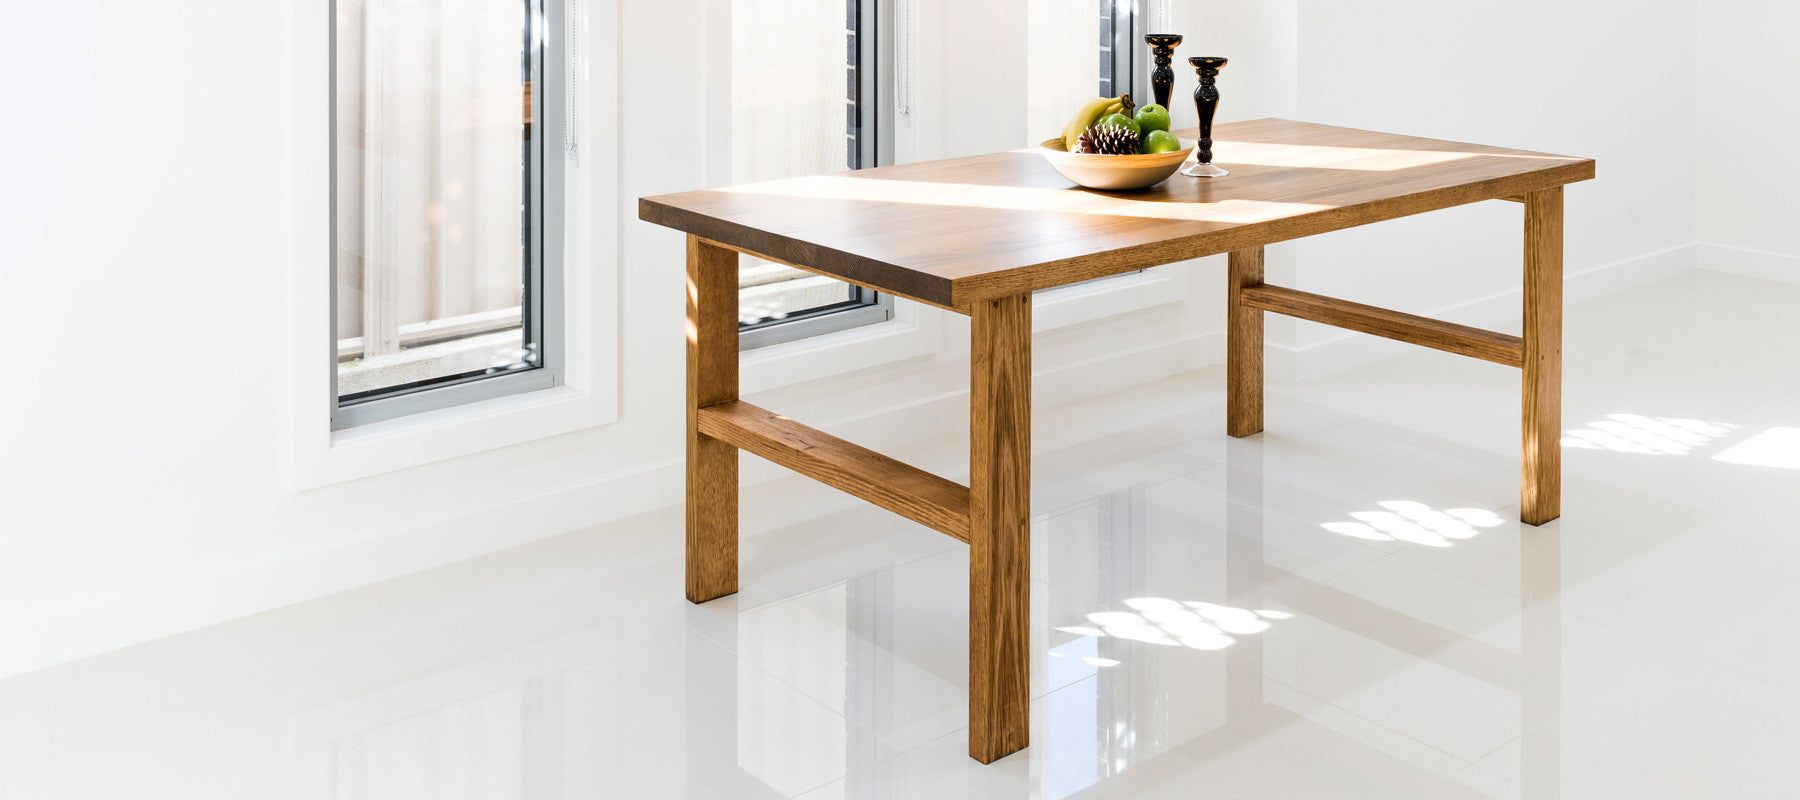 Henson dining table